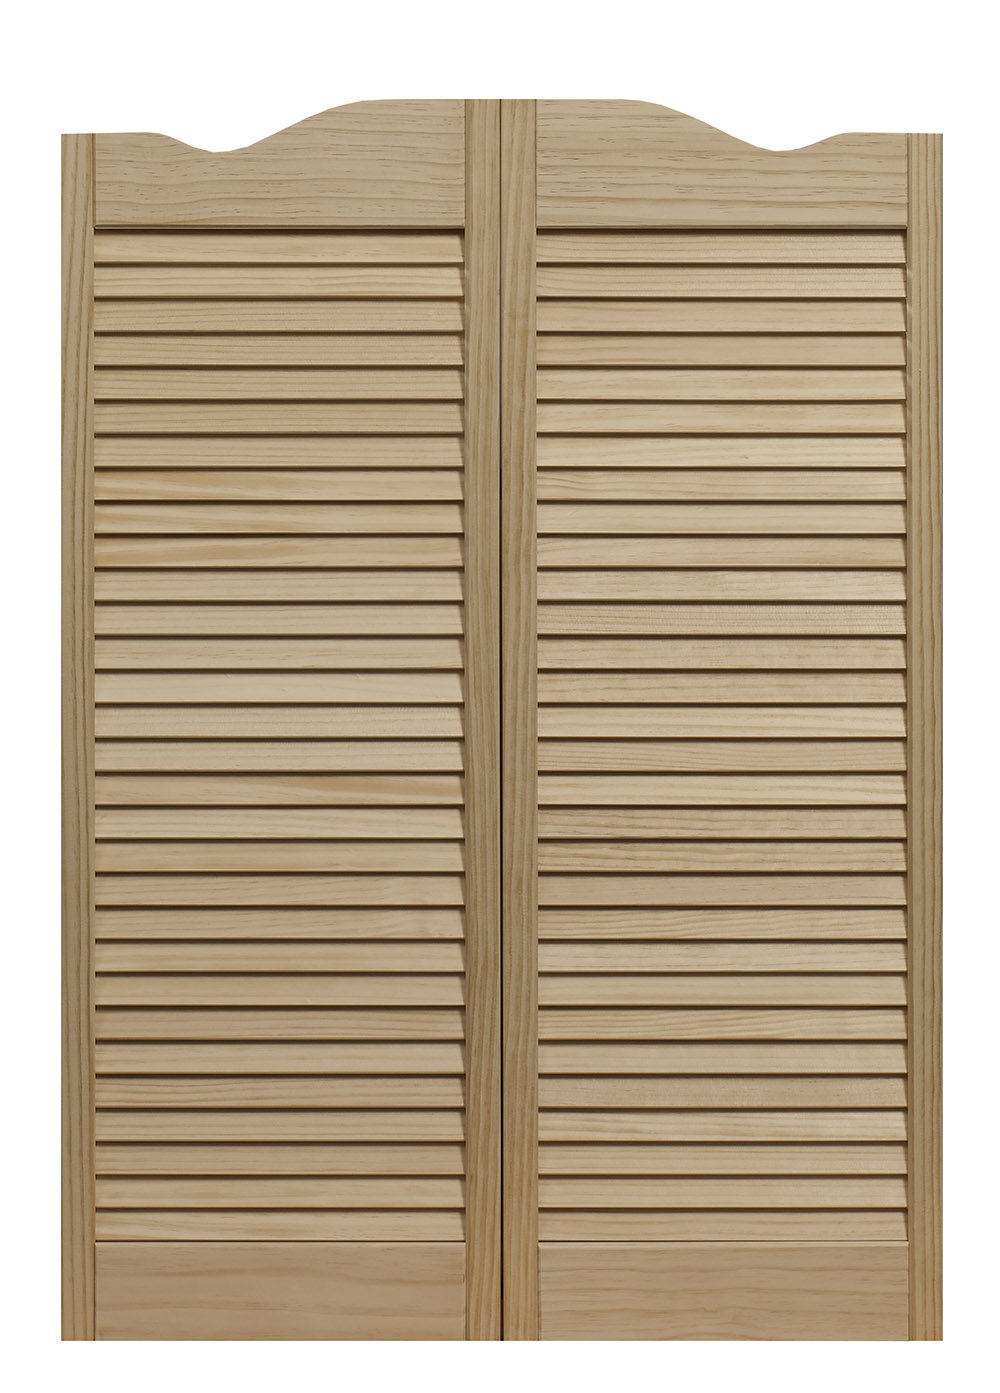 Pinecroft 858442 Dixieland Louvered Café Interior Swing Wood Door, 24'' x 42'', Unfinished